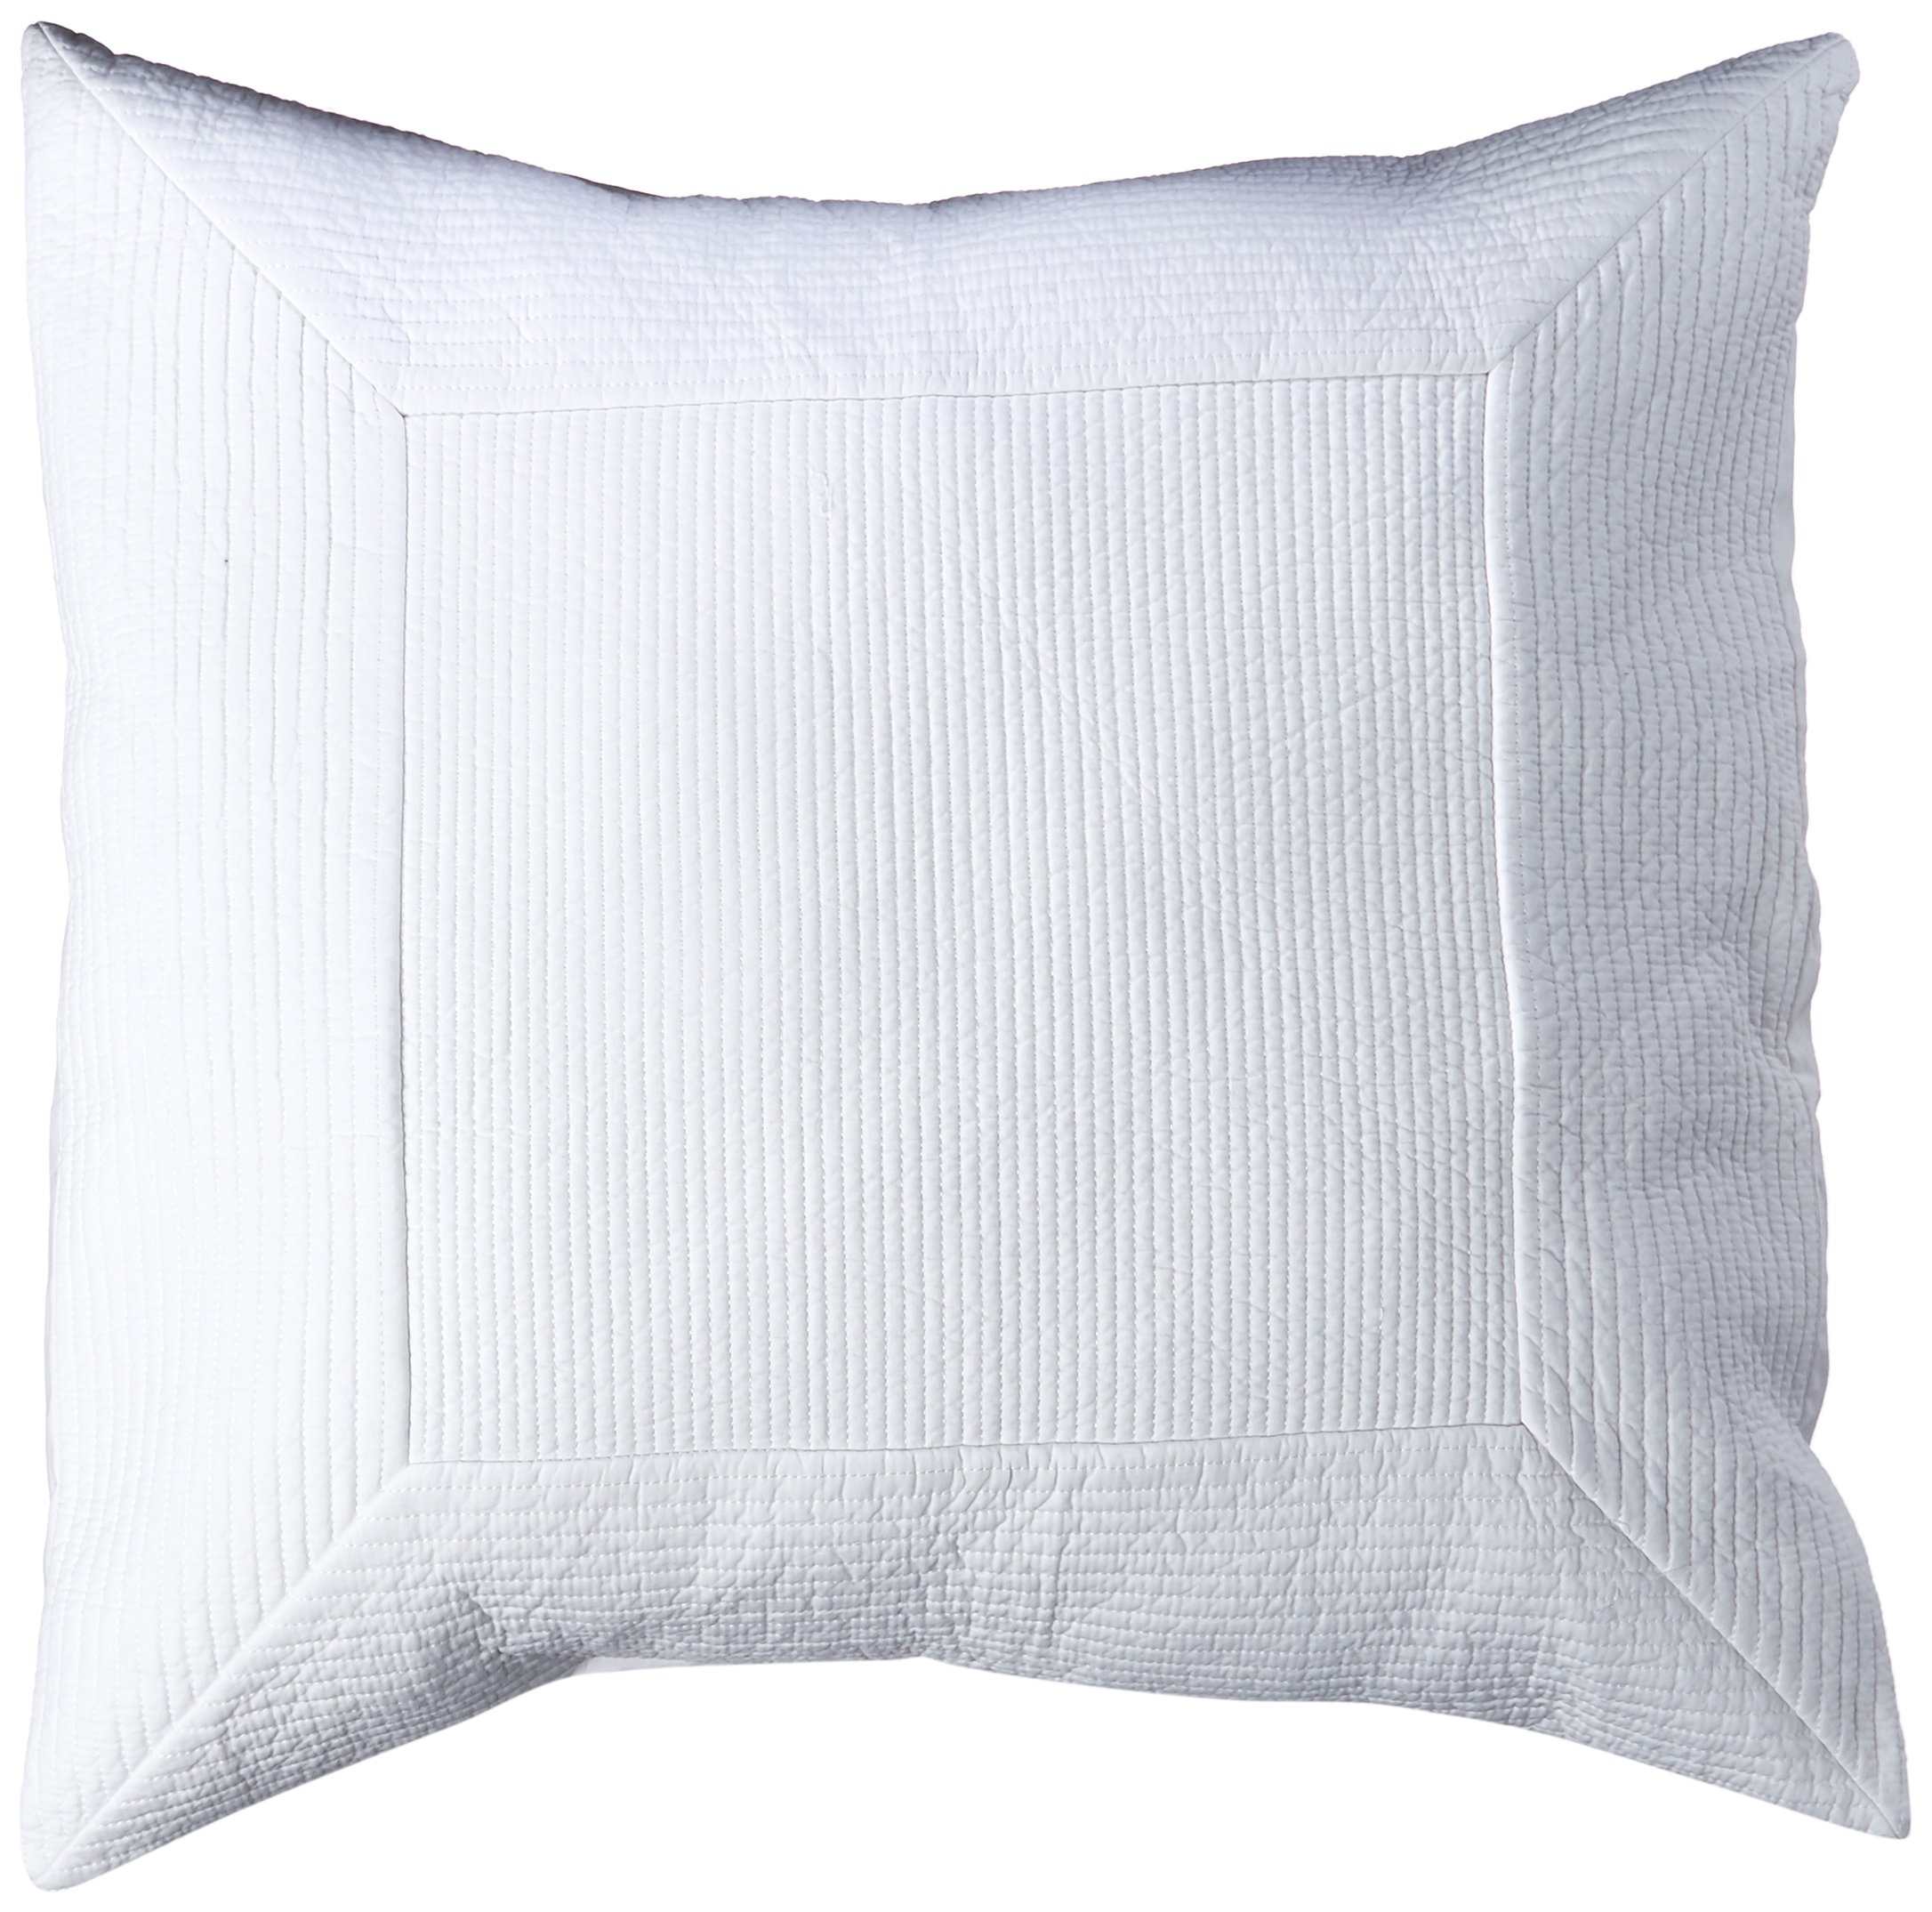 Tommy Bahama Quilted Sham, European King, White